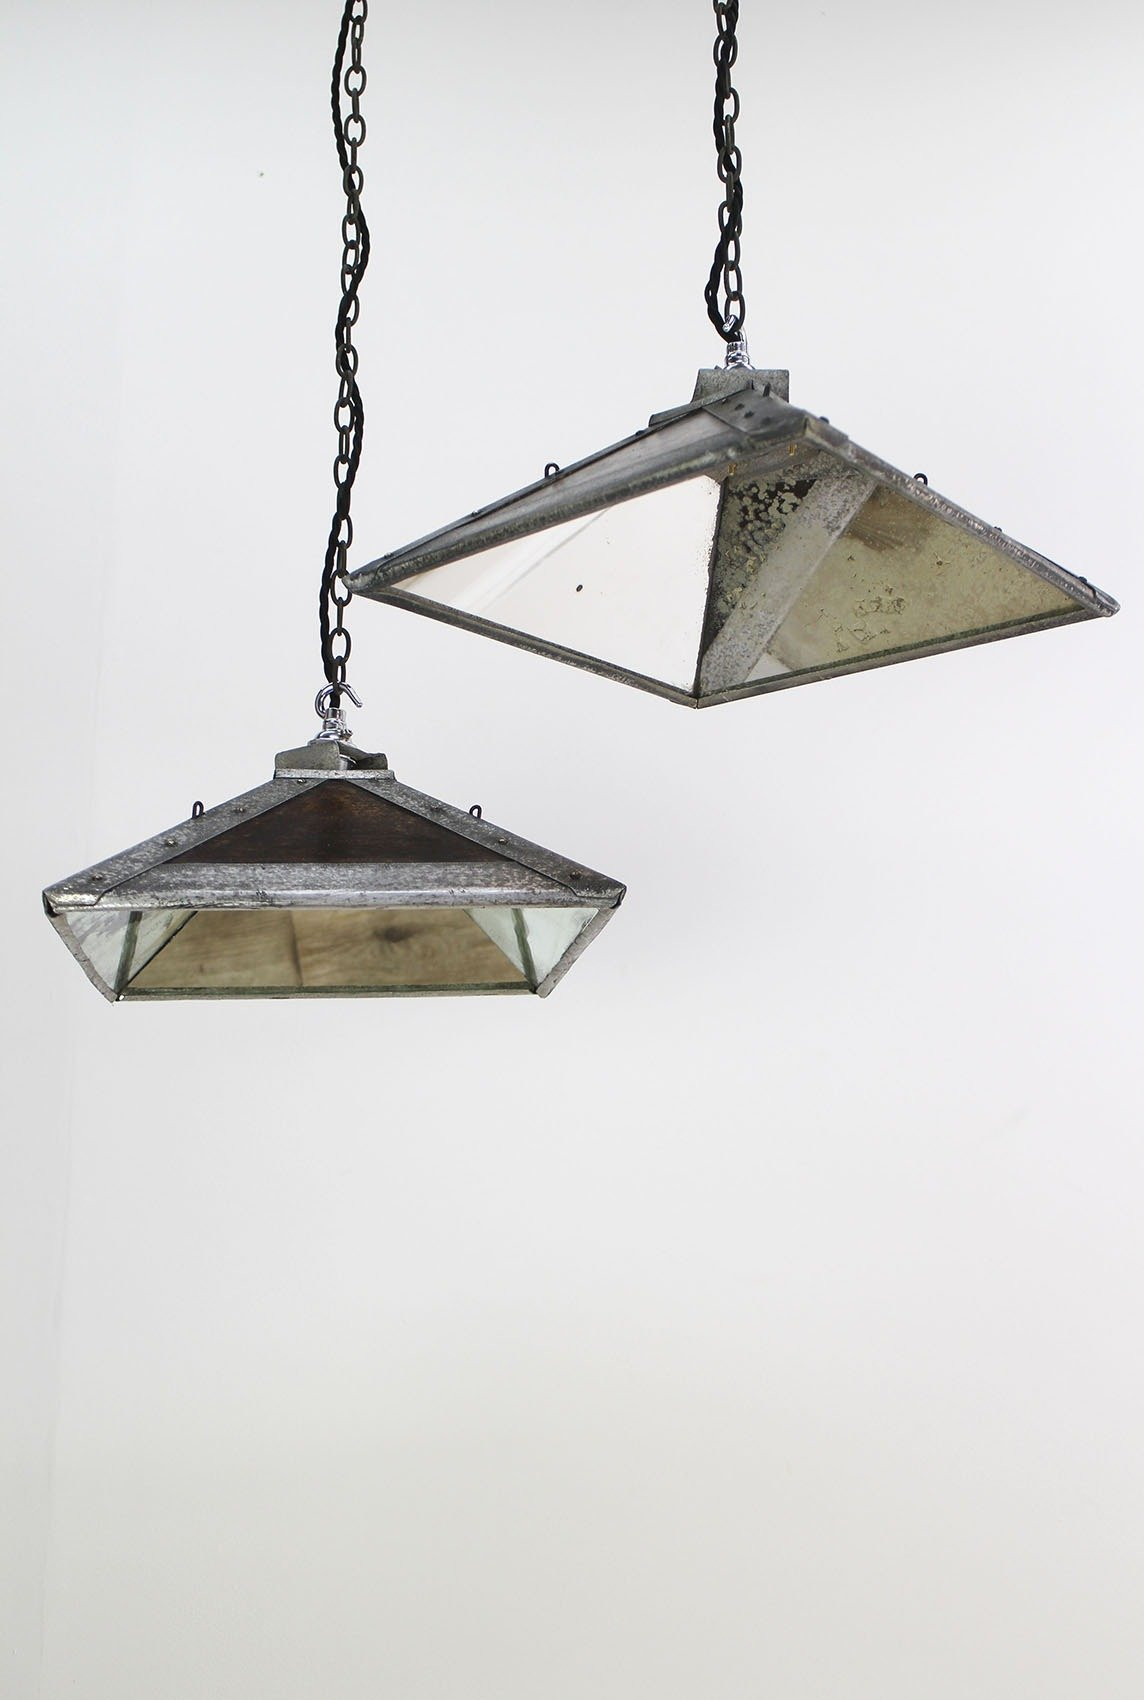 esla table antique wall co s products industrial pendant lights restored from the salvaged mirrored uk projectvintage retro ceiling and lamps light